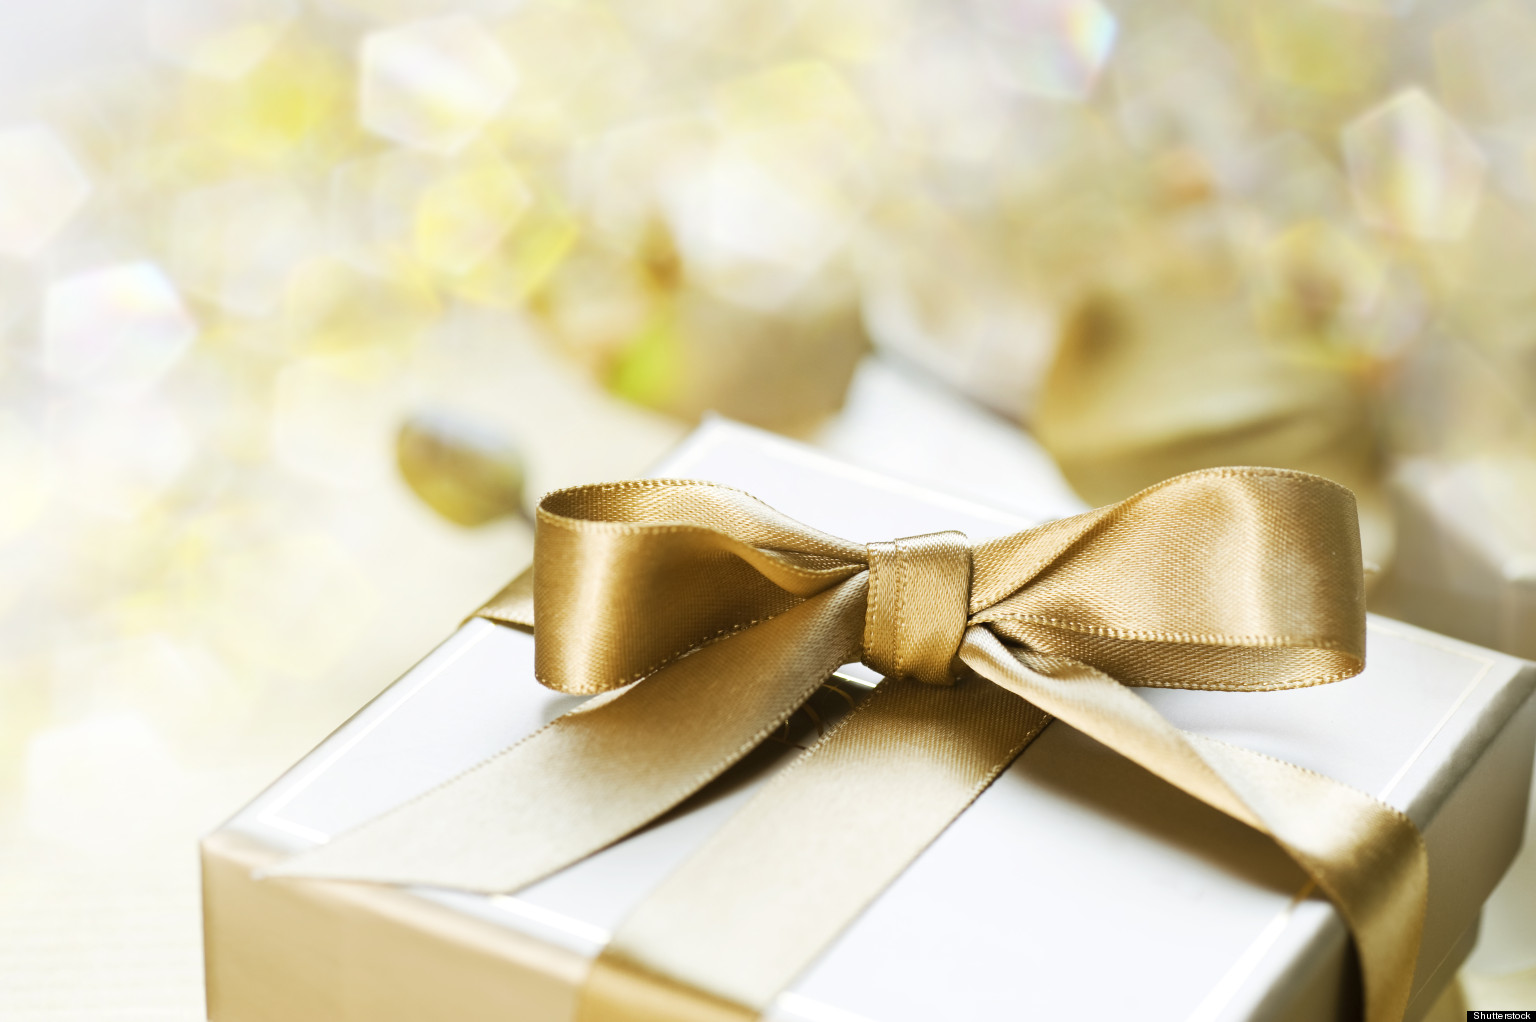 Best Wedding Gift Ideas Australia : Truly Cool Wedding Gifts: 14 Outstanding Options HuffPost